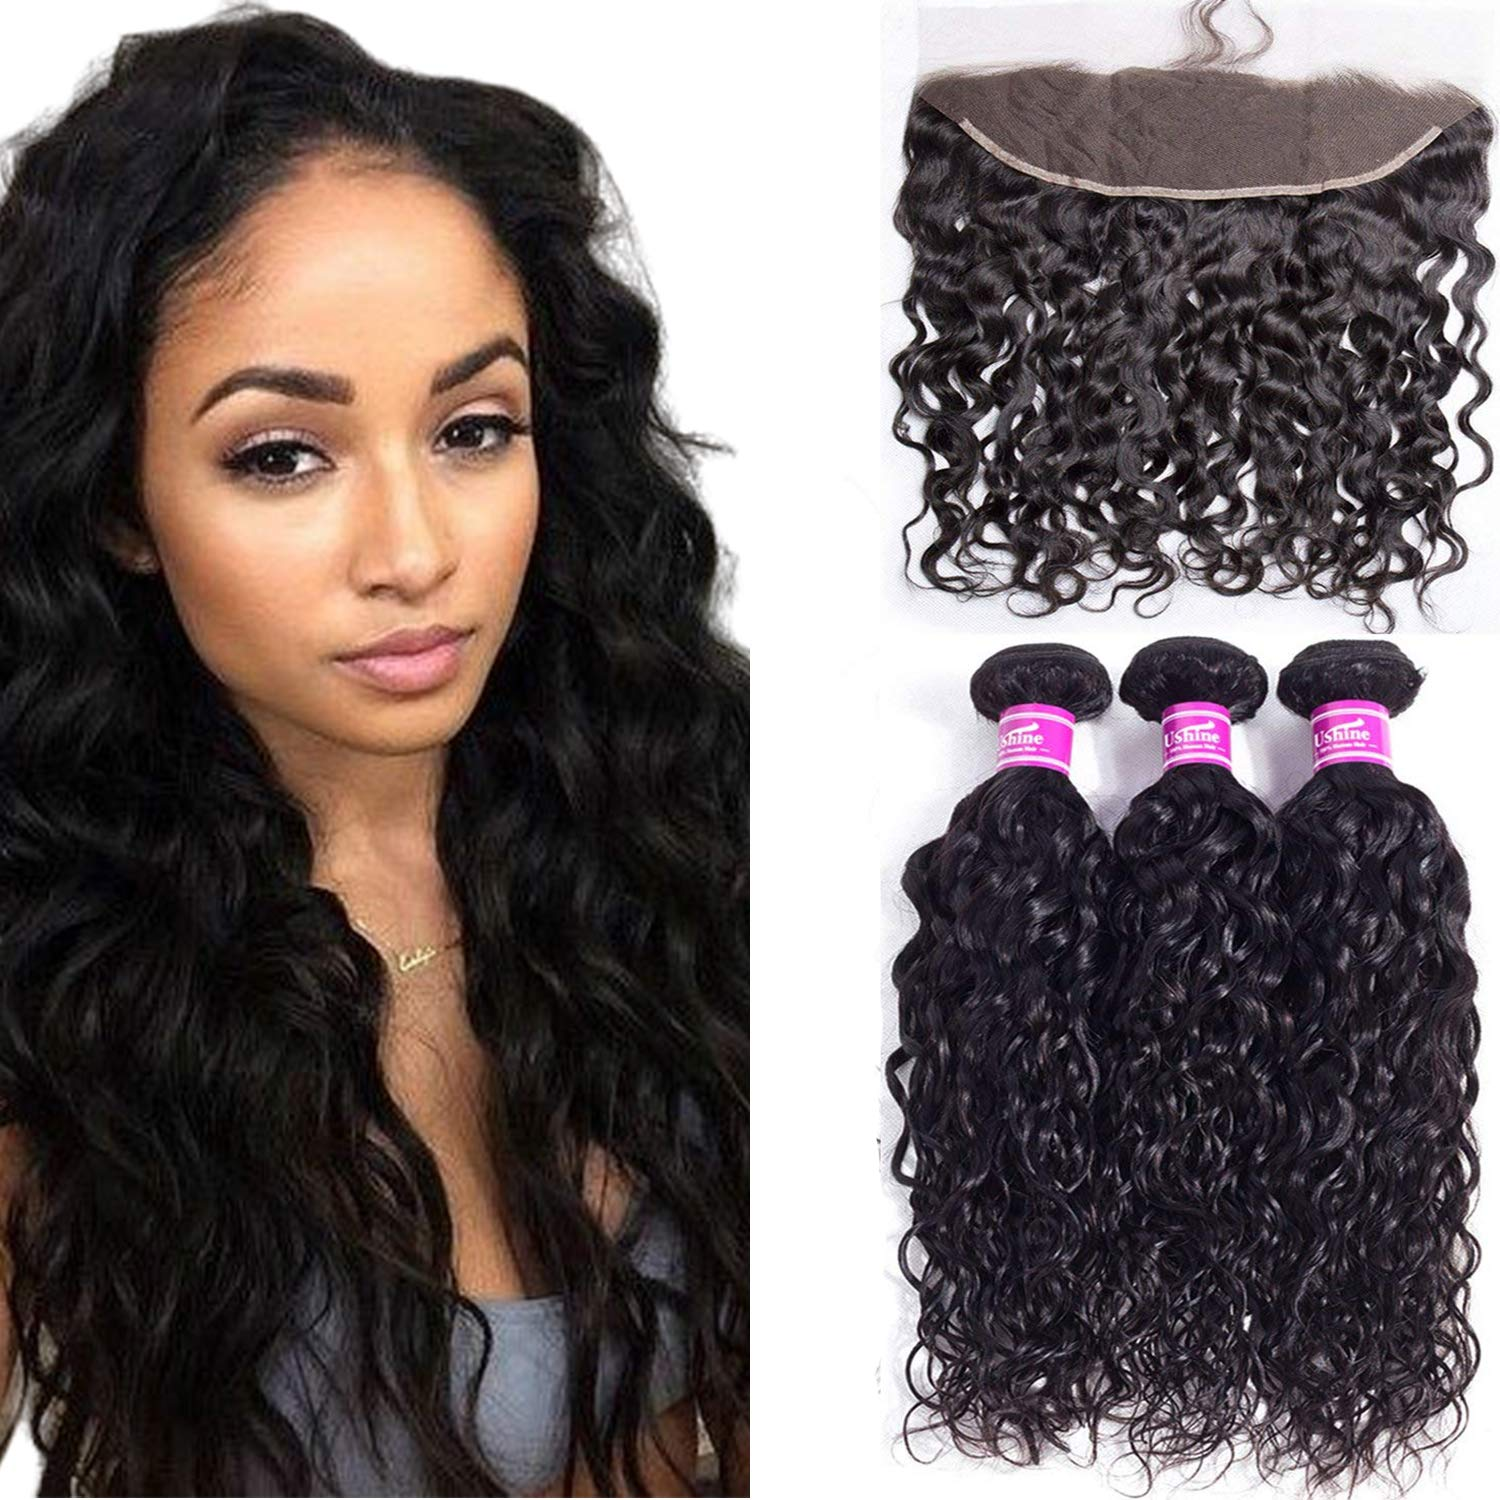 """20""""22""""24""""+18"""" Water Wave Hair 3 Bundles With 13x4 Lace Frontal Free Part 375g/pack 100% Unprocessed Brazilian Wet And Wavy Hair Lace Frontal with Baby Hair Natural Black Color Ushine Hair"""